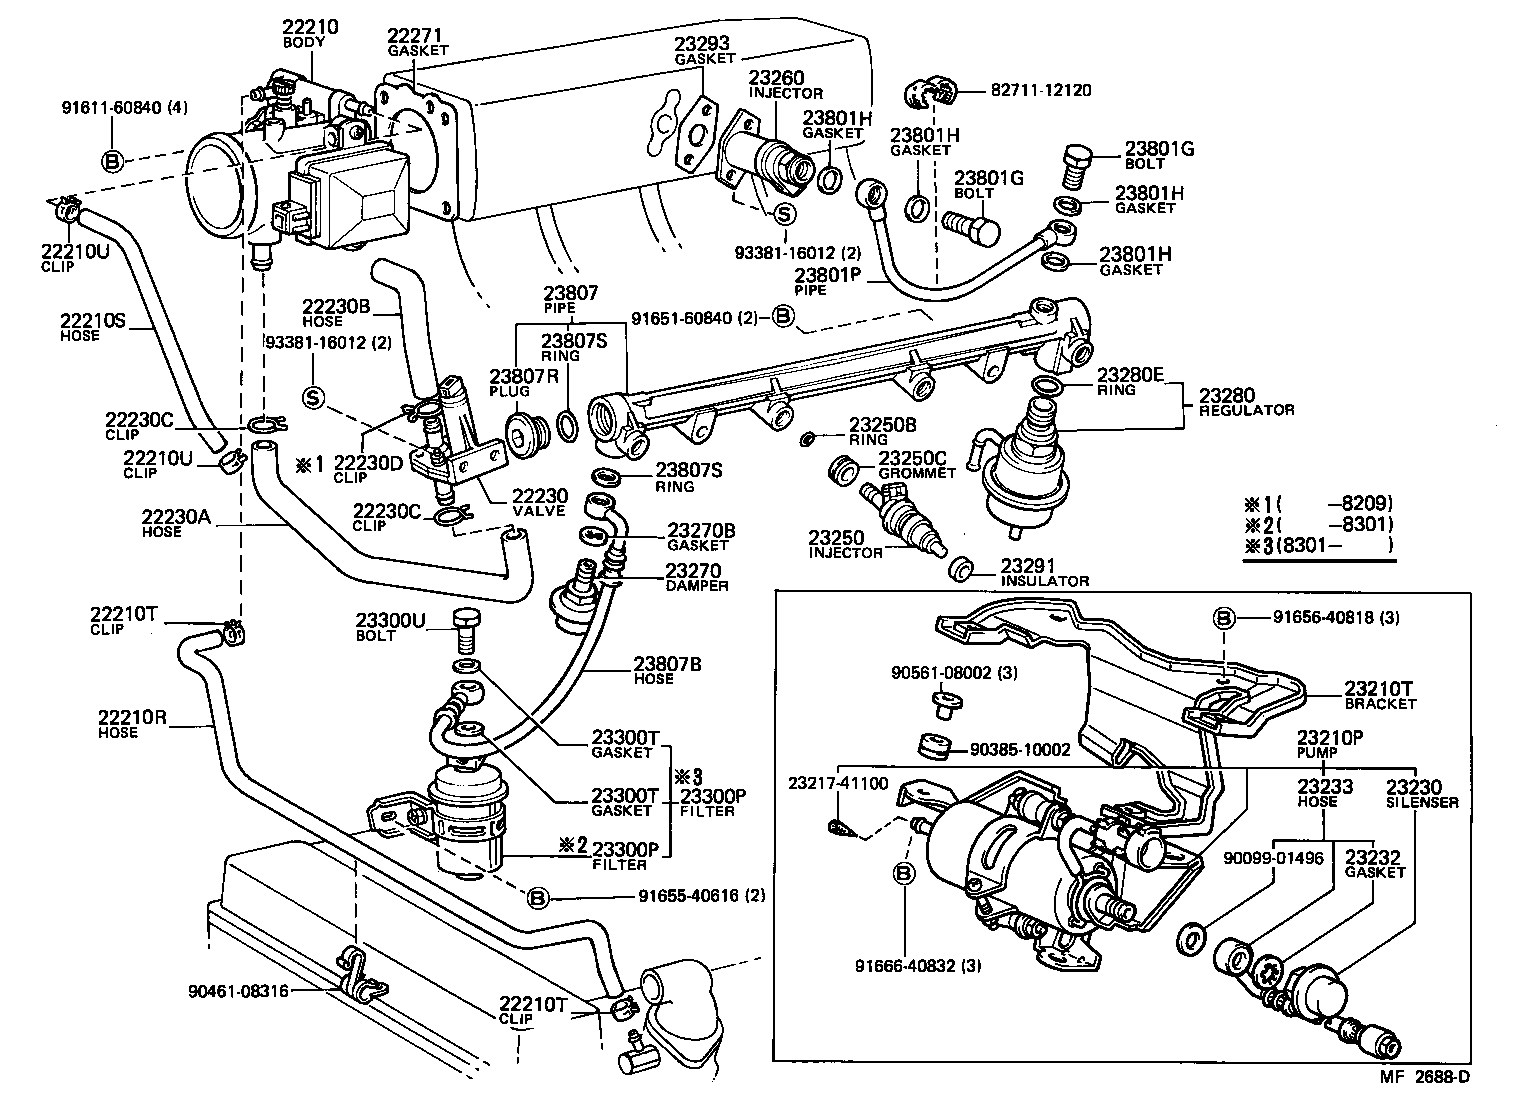 1990 Toyota Supra Engine Diagram Wiring Diagrams 86 Fuse Box Celica Car Parts Body Kit